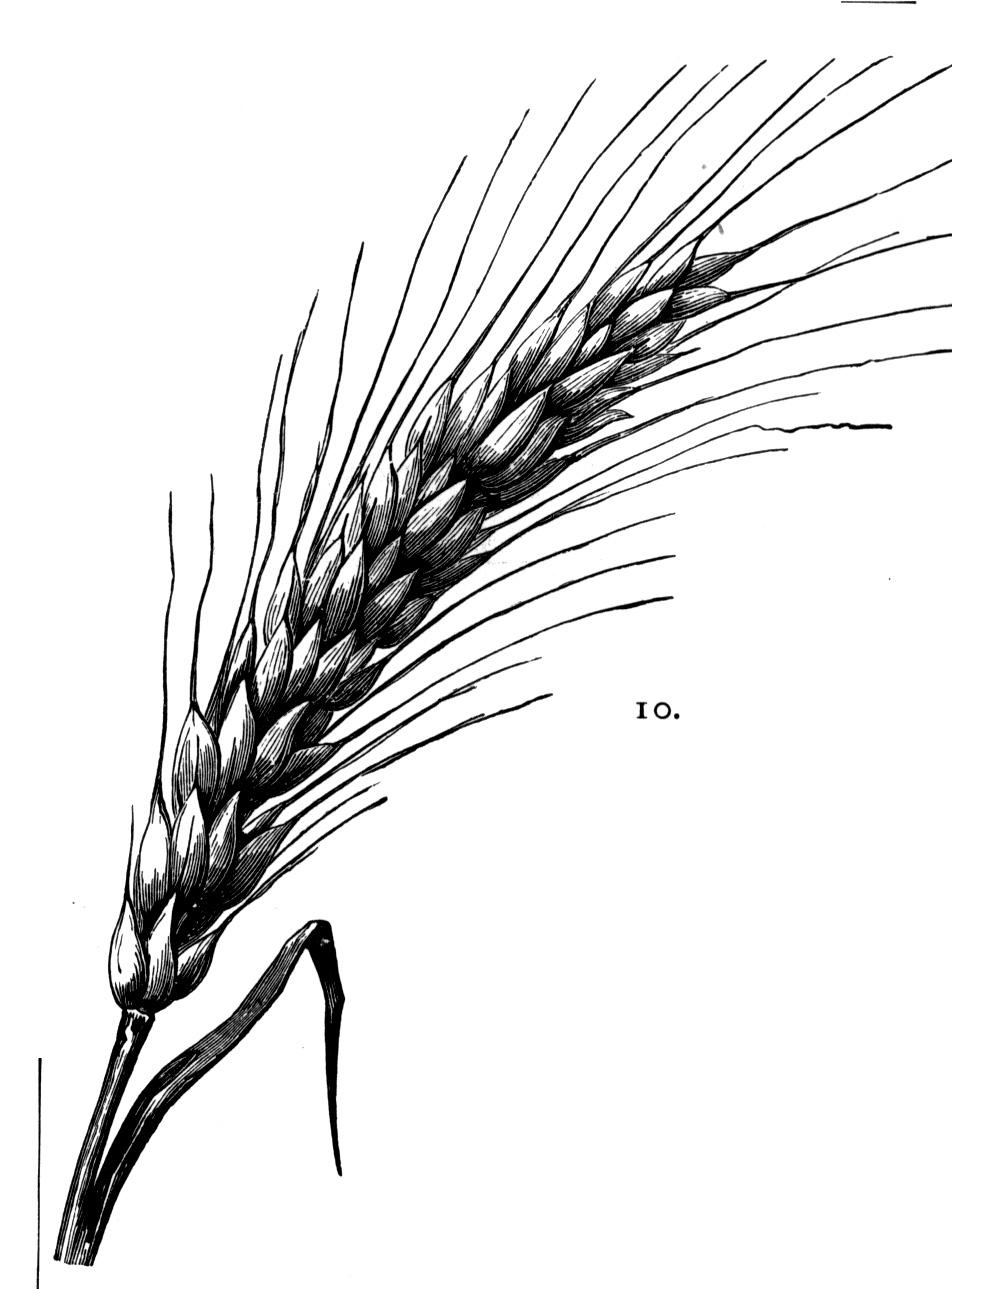 Drawn wheat How How Wheat  Download